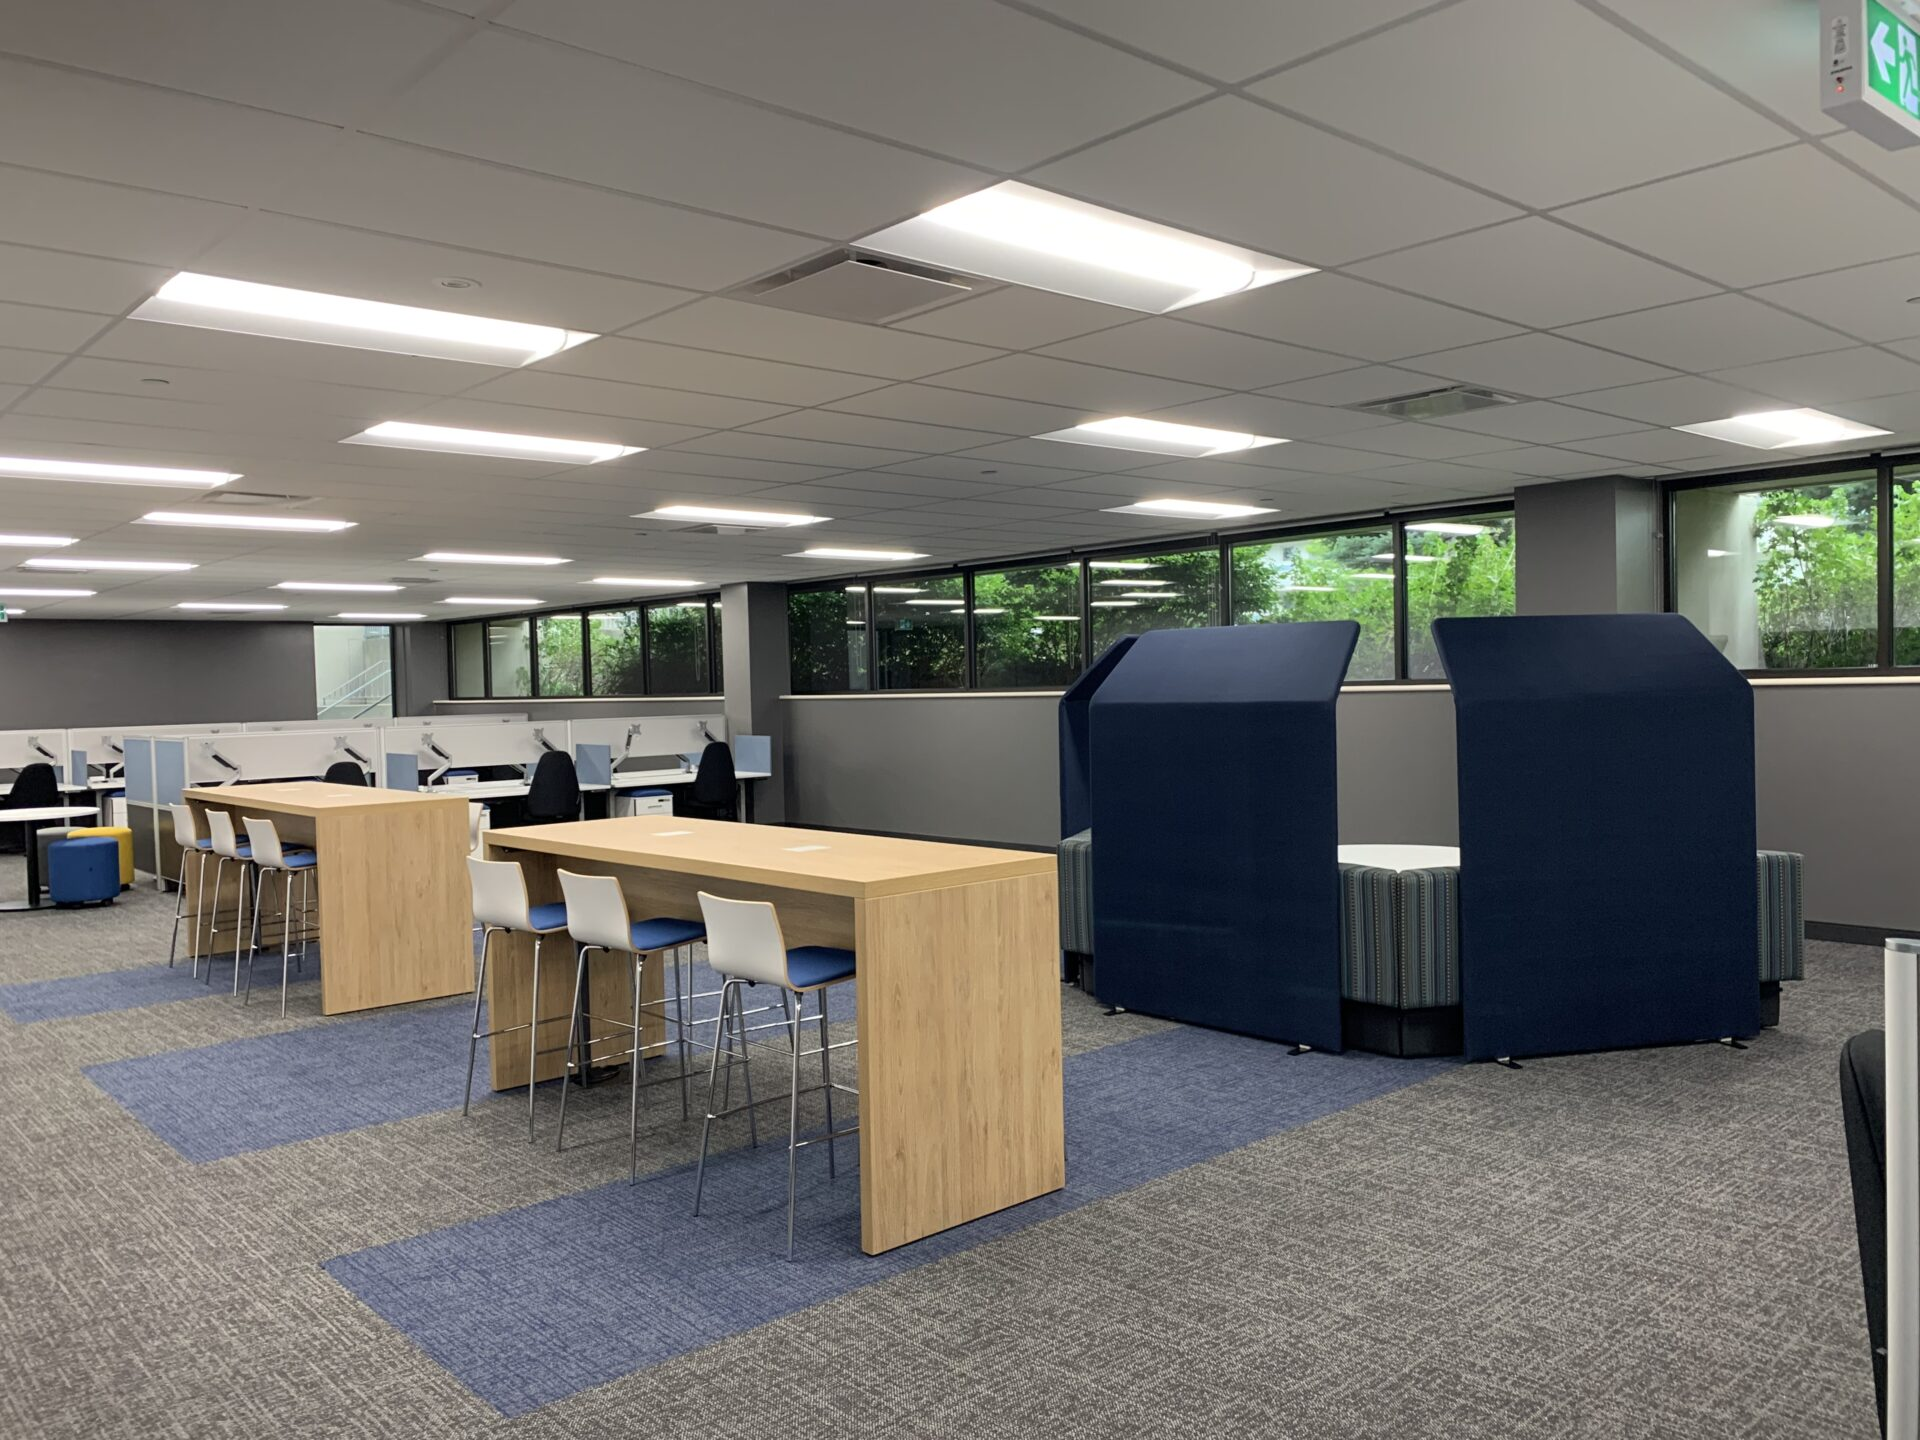 Interior office space showing bar-height collaboration spaces and individual workstations in the background